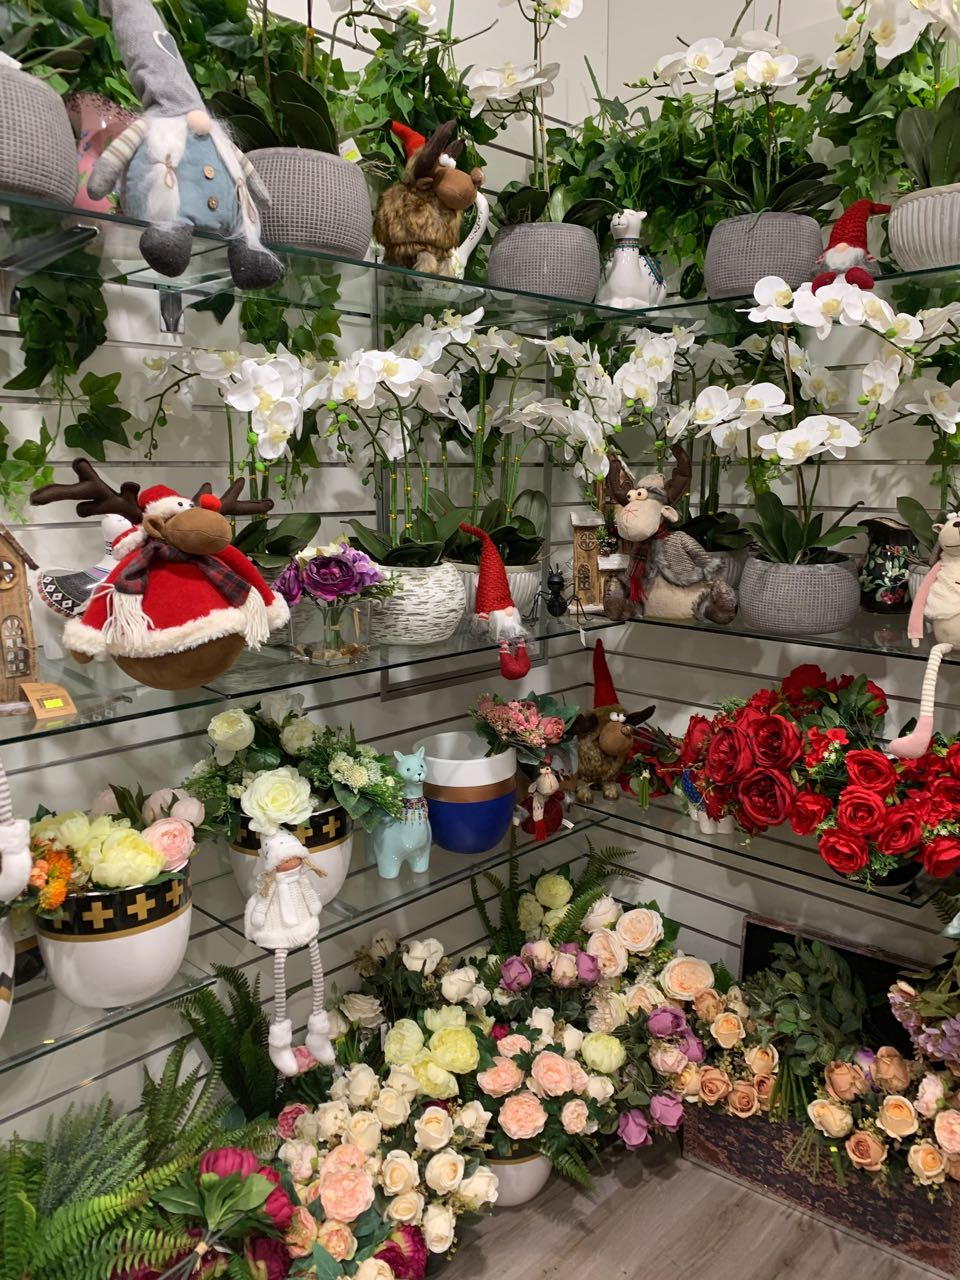 retail-homeware-and-gift-shop-business-for-sale-south-east-4